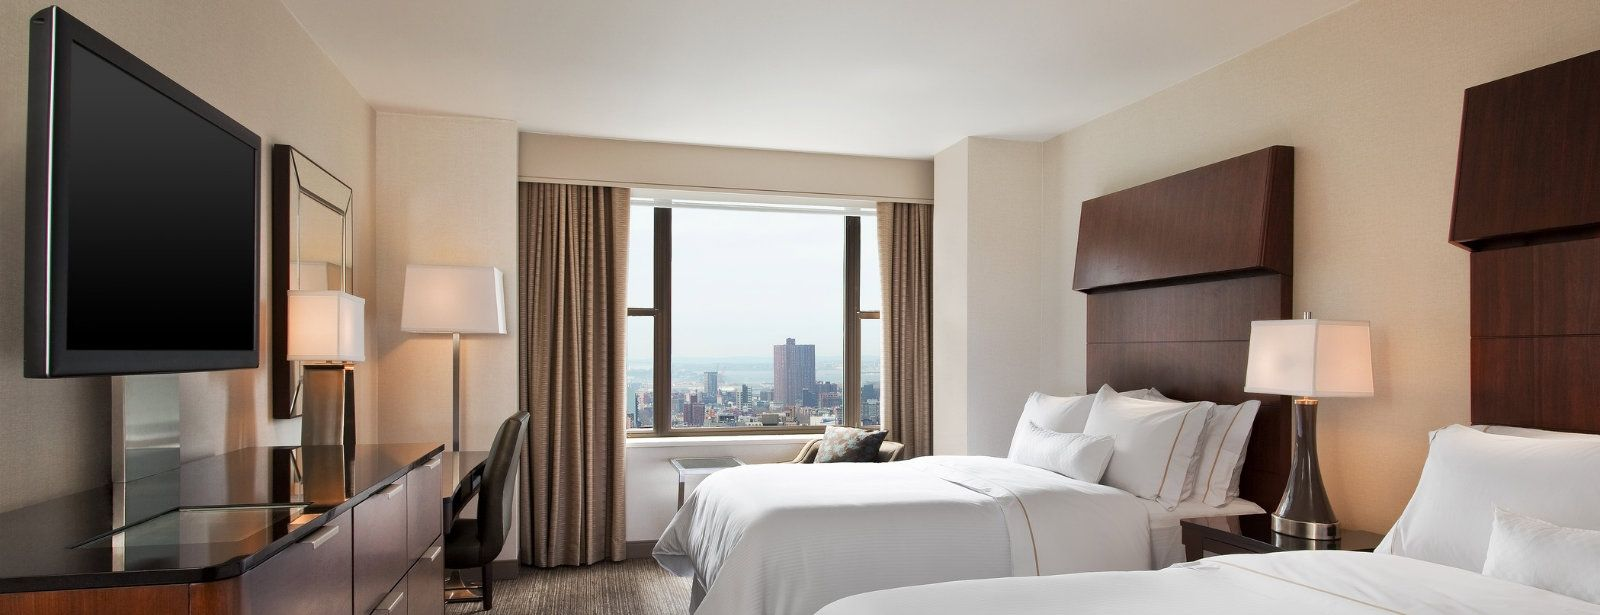 Midtown Manhattan Accommodations - Traditional Rooms